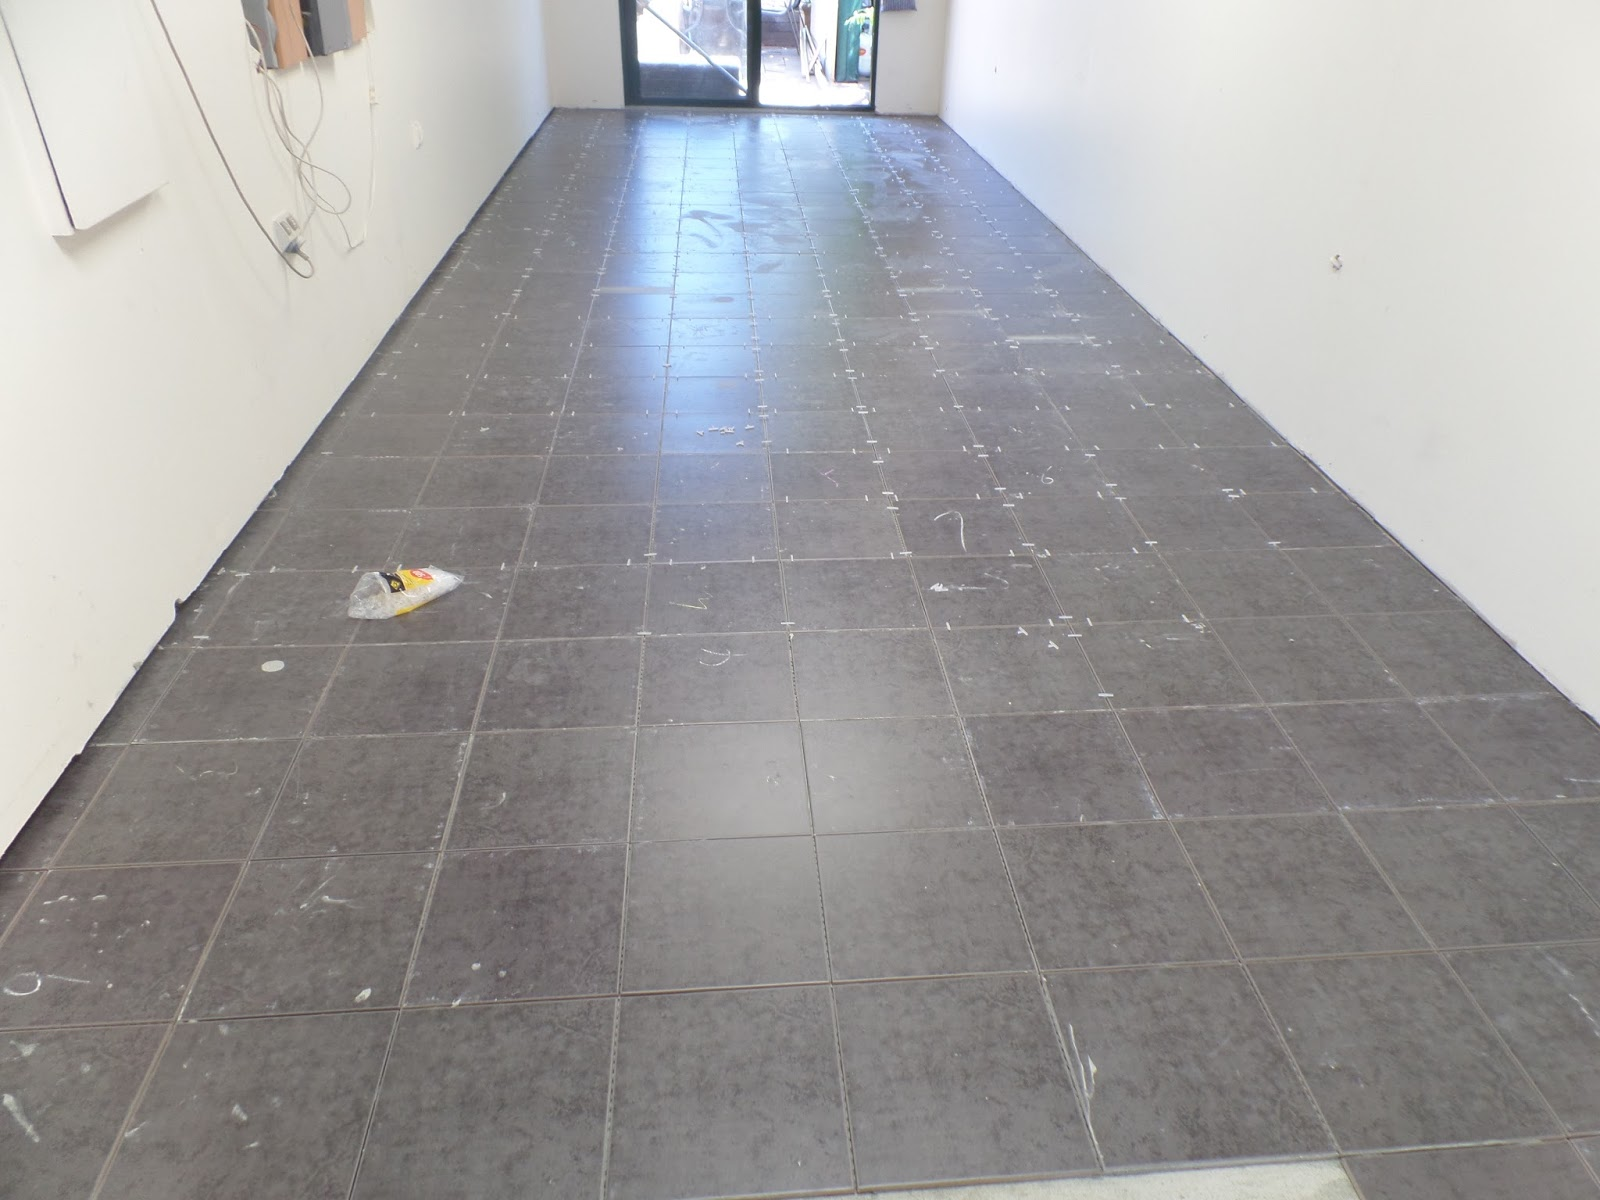 Kiwibird activity at aldinga beach at the end of the first day all tiles were fixed to the concrete floor next job grout the floor doublecrazyfo Image collections